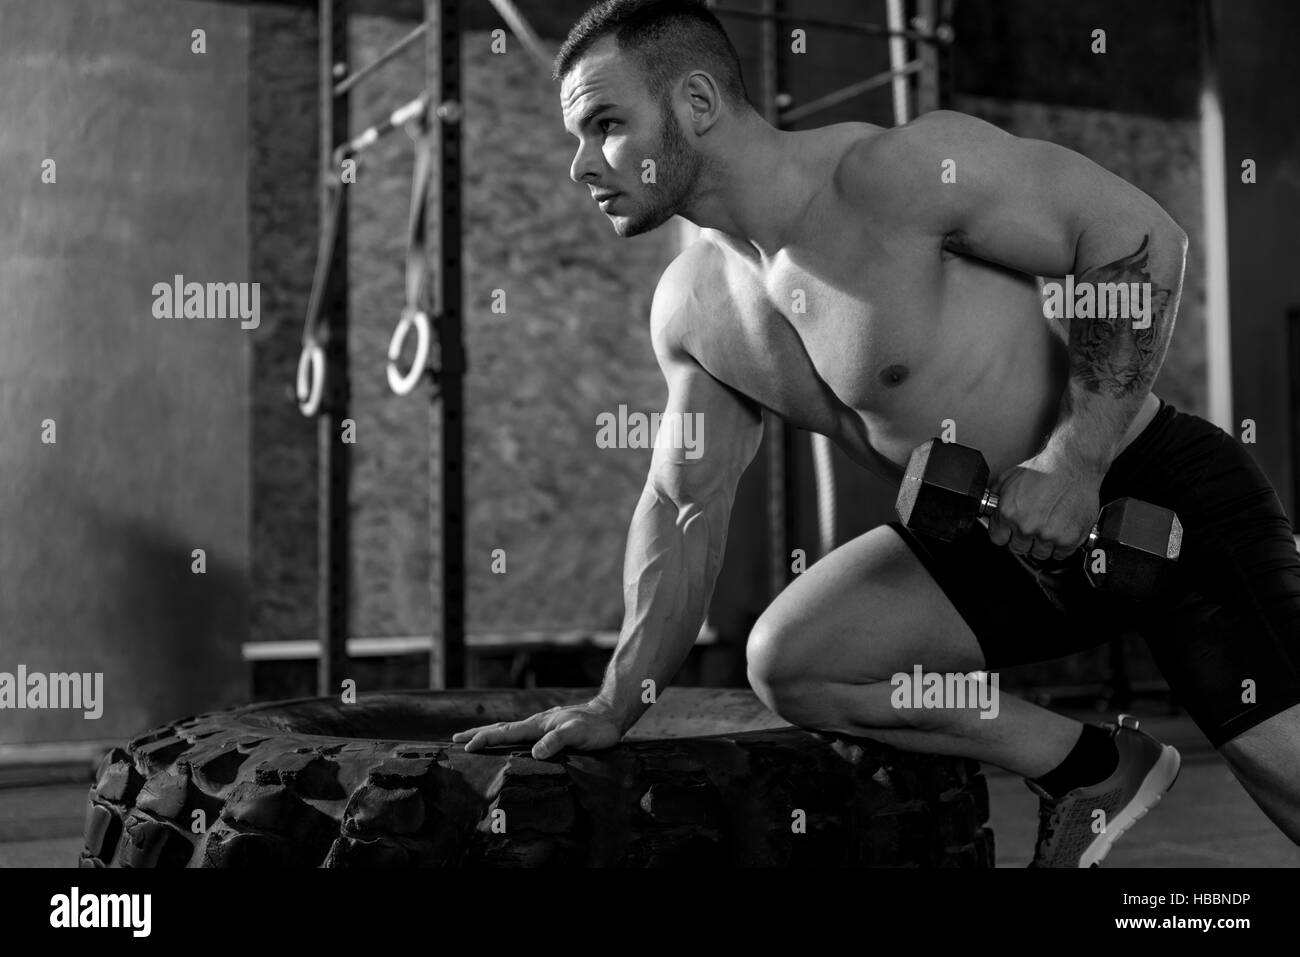 Handsome strong bodybuilder developing his biceps - Stock Image